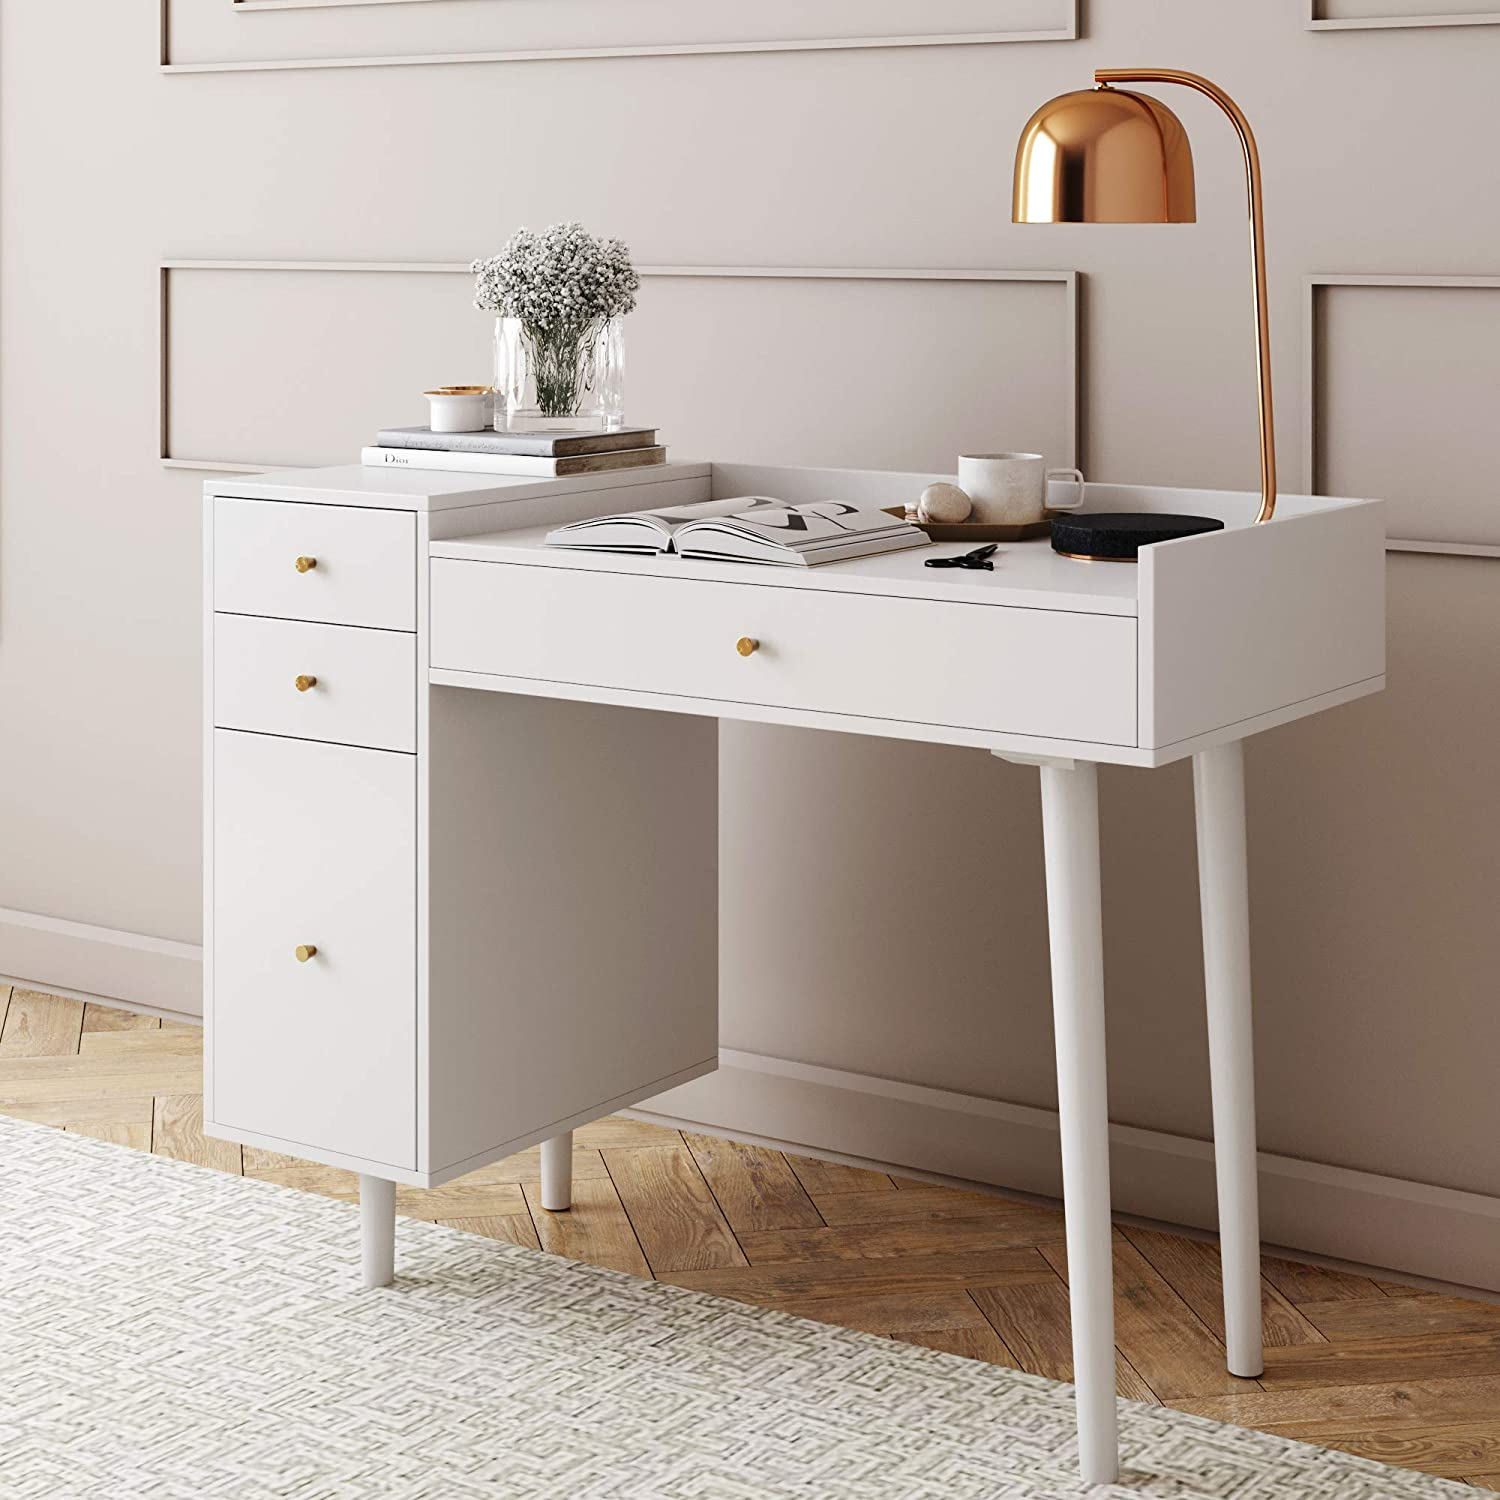 Nathan James Daisy Vanity Dressing Table or Makeup Desk with 4-Drawers and Brass Accent Knobs, White/Gold